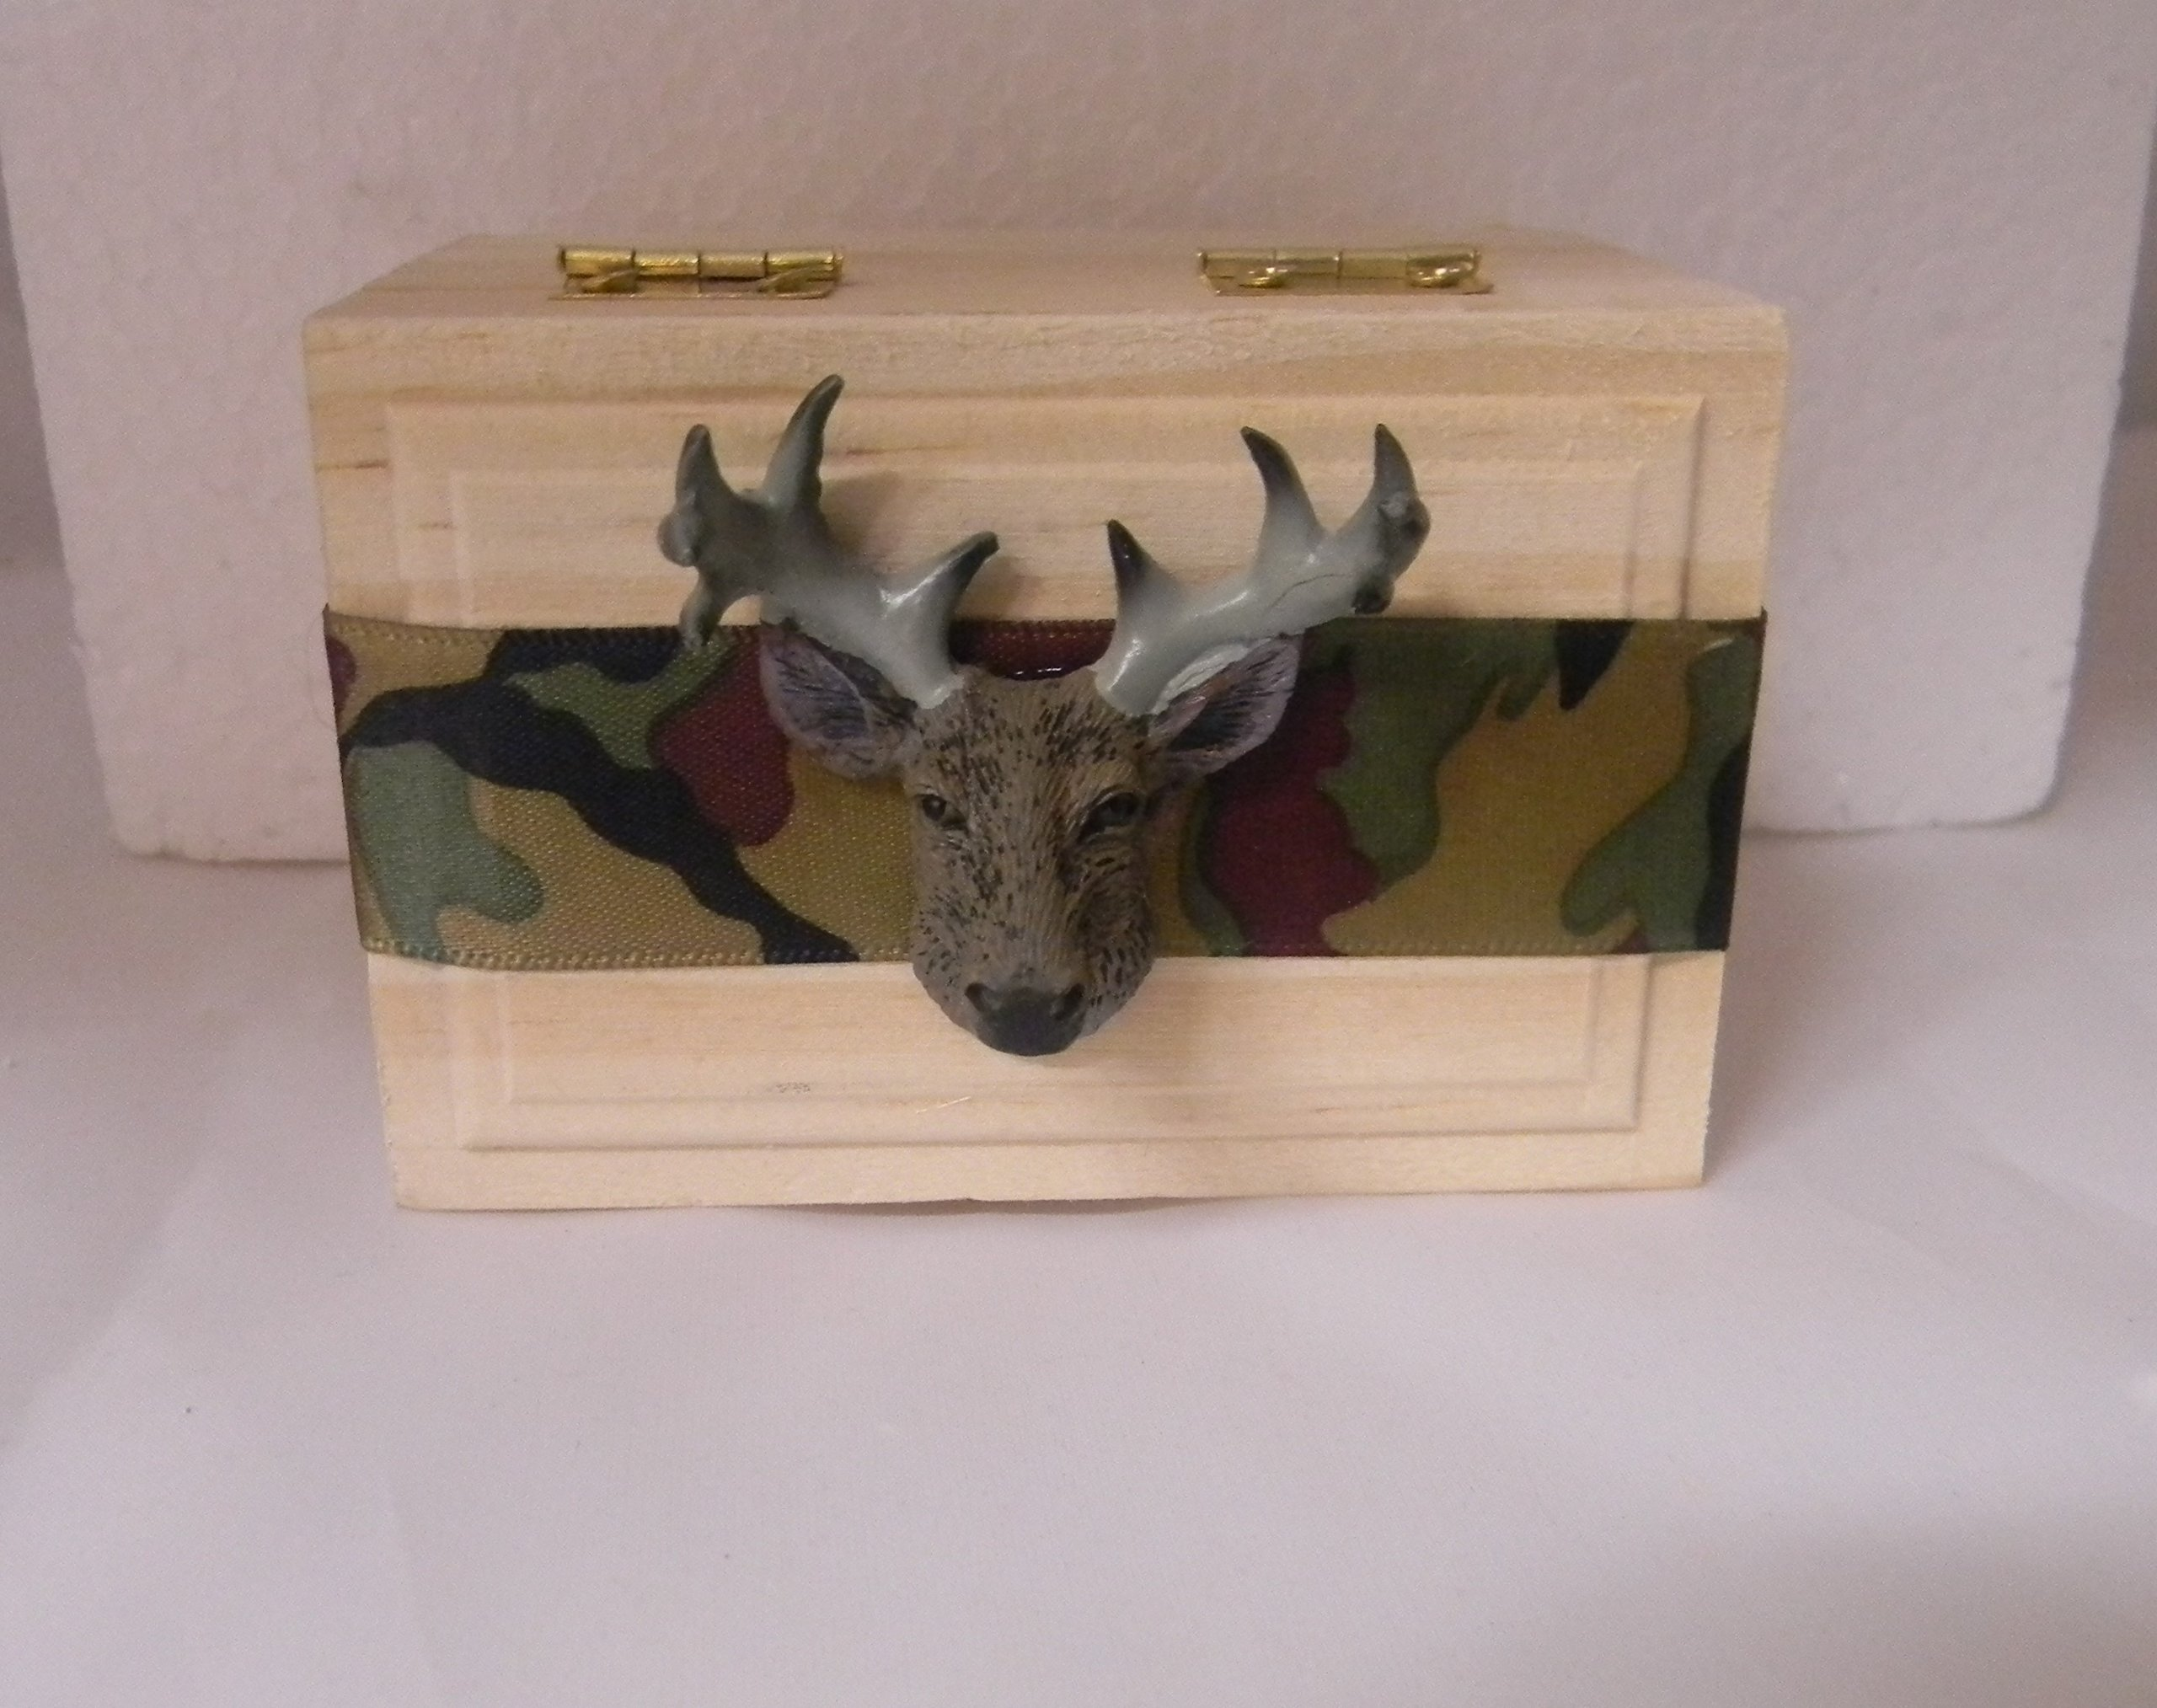 Wedding Party ceremony camo deer hunter buck ring bearer pillow Box by Custom Design Wedding Supplies by Suzanne